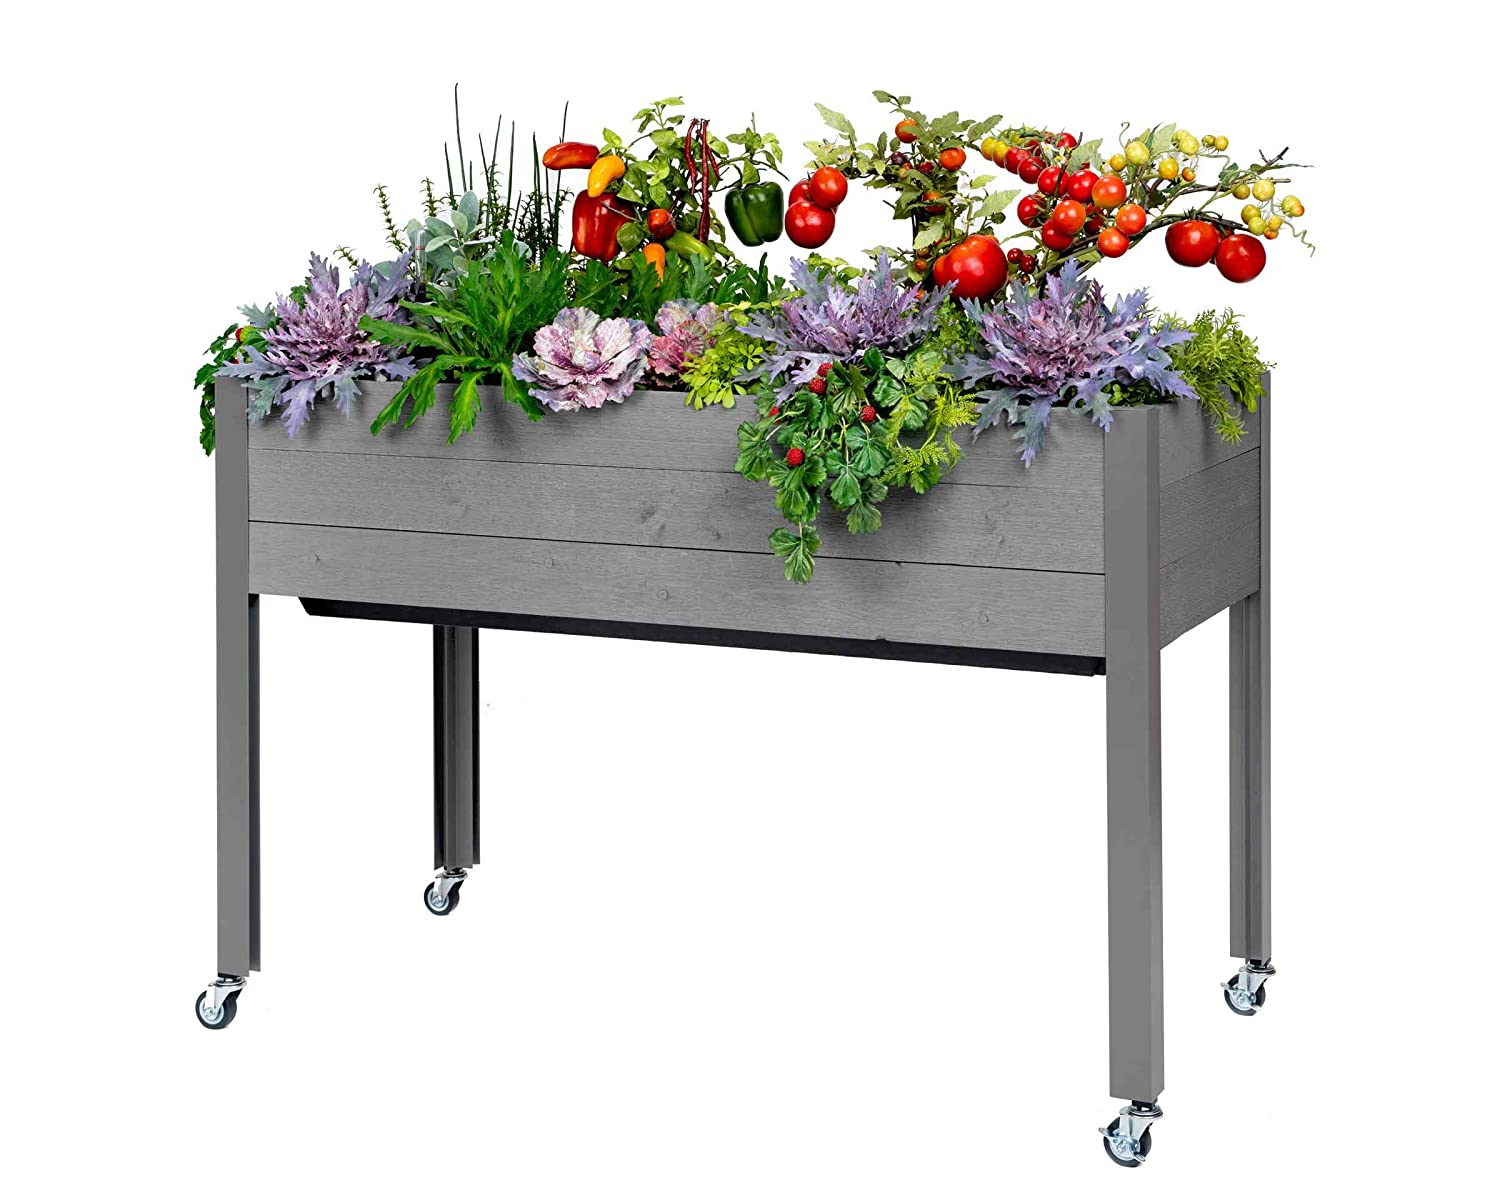 """CedarCraft Self-Watering Elevated Spruce Planter (21"""" x 47"""" x 32""""H) - The Flexibility of Container Gardening + The Convenience of a self-Watering System. Grow Healthier, More Productive Plants."""